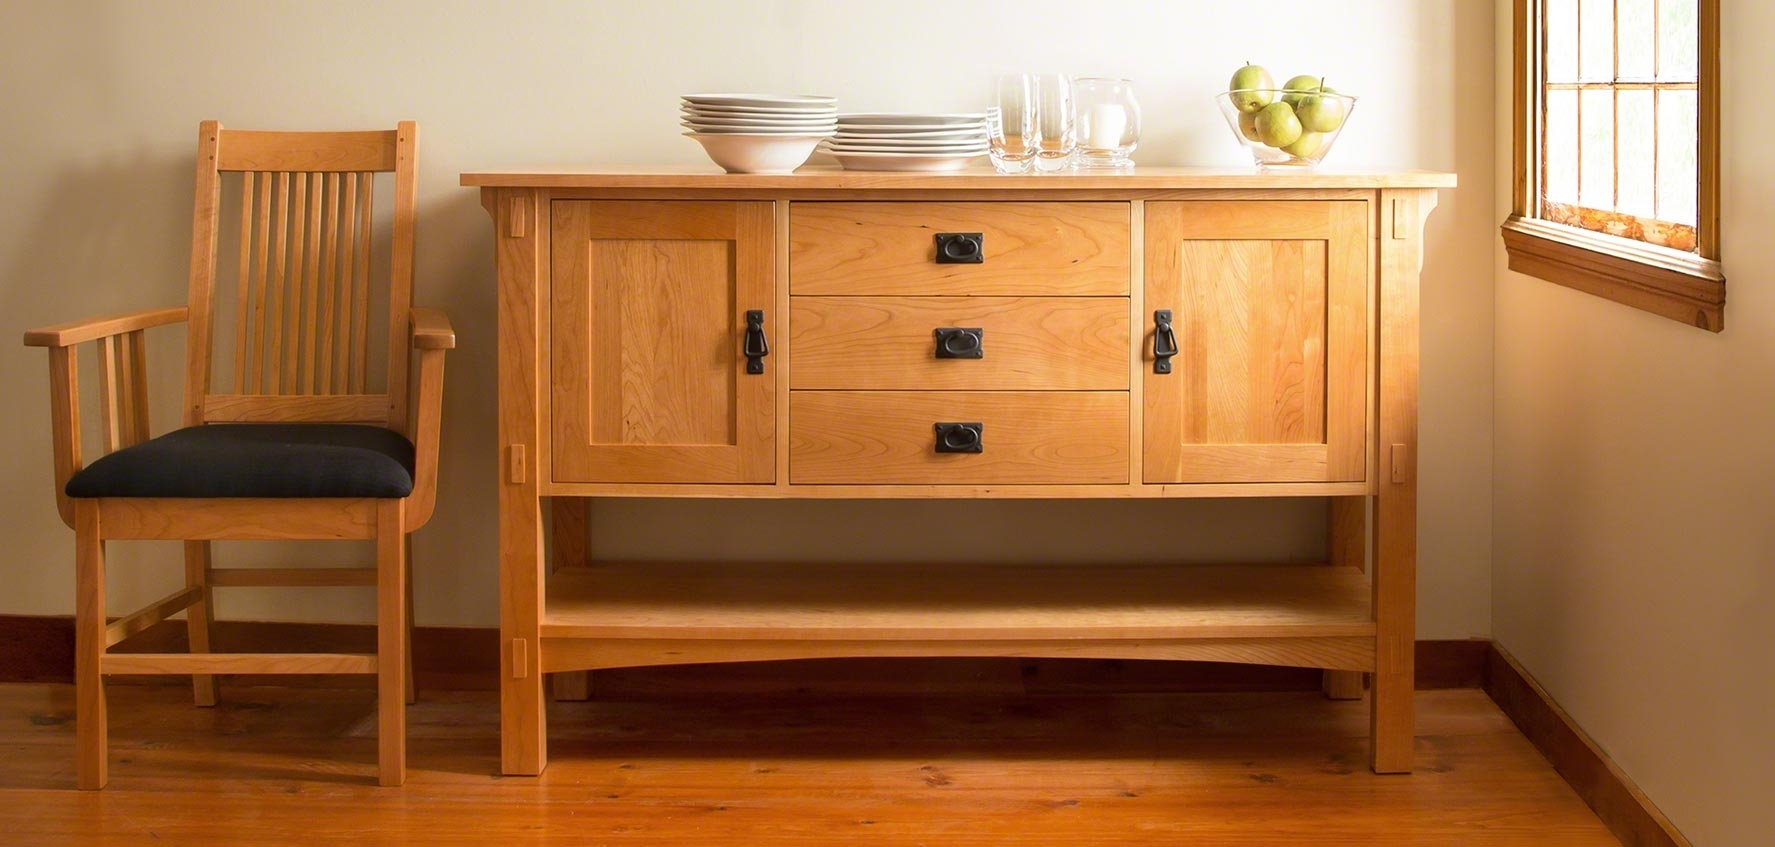 Mission & Craftsman Buffets - Vermont Woods Studios within Craftsman Sideboards (Image 19 of 30)